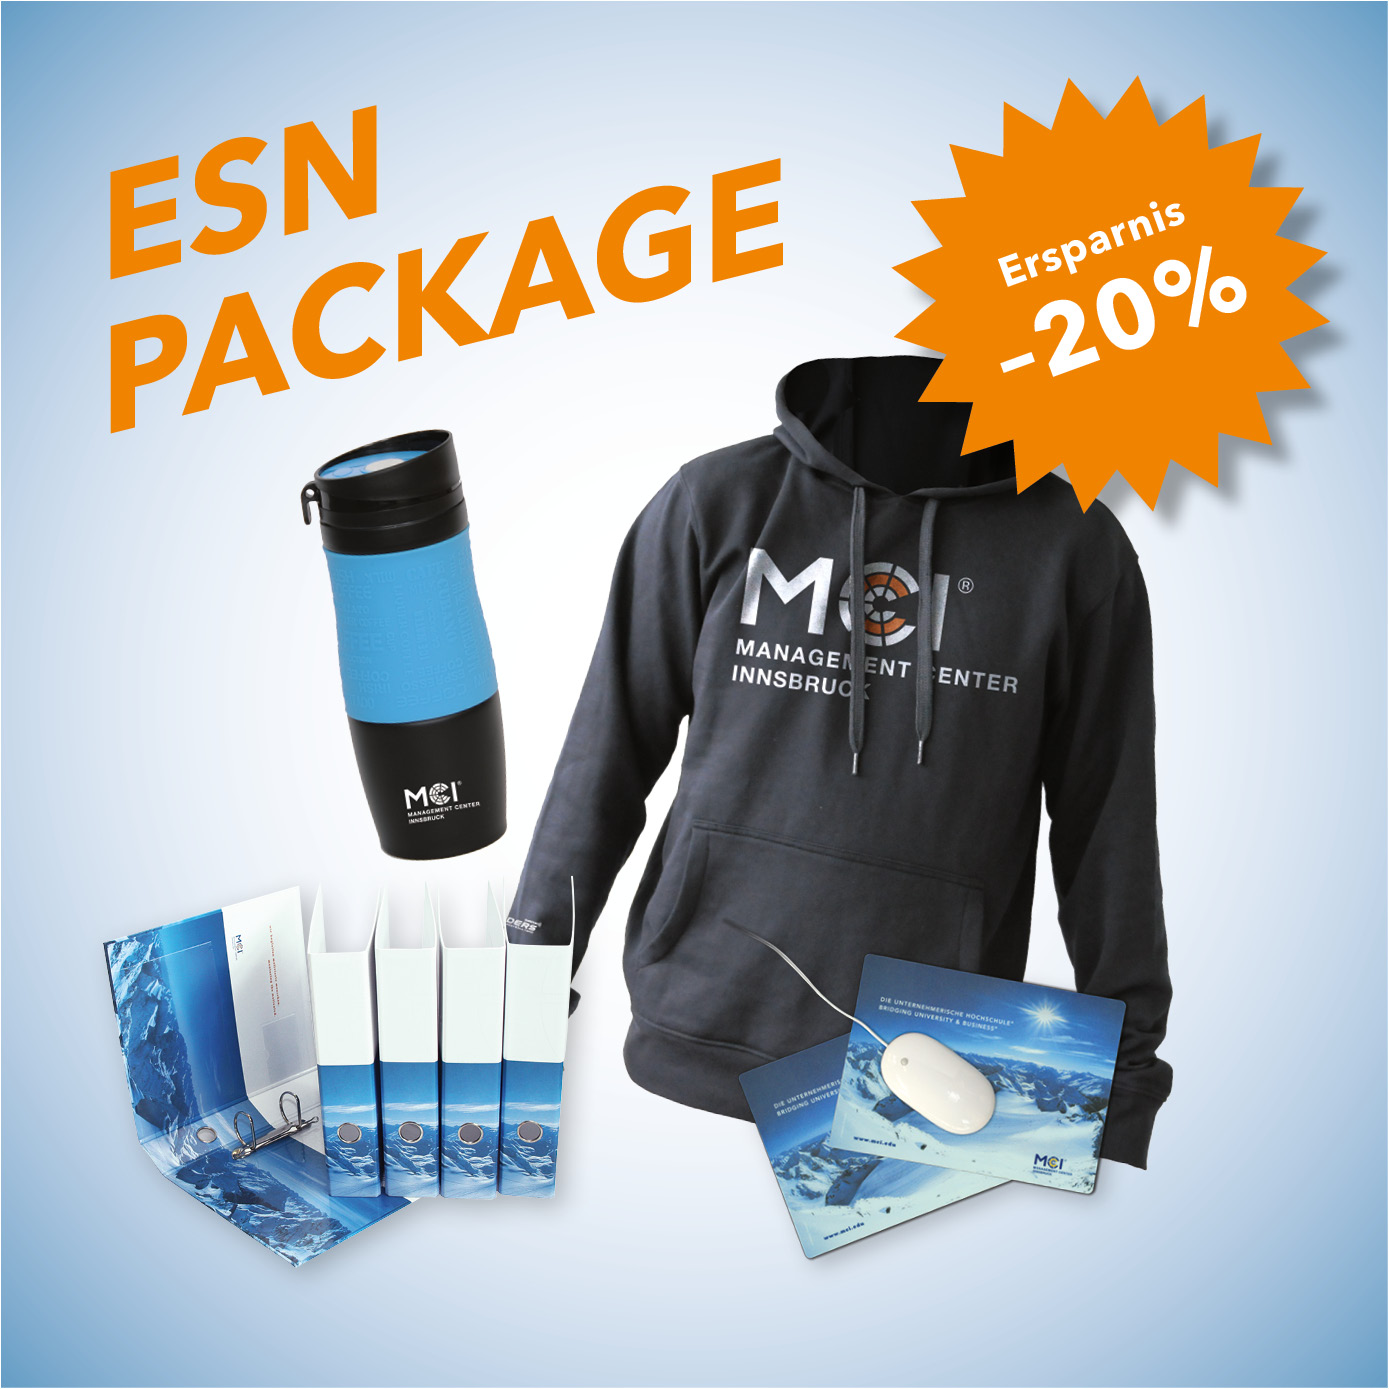 ESN package